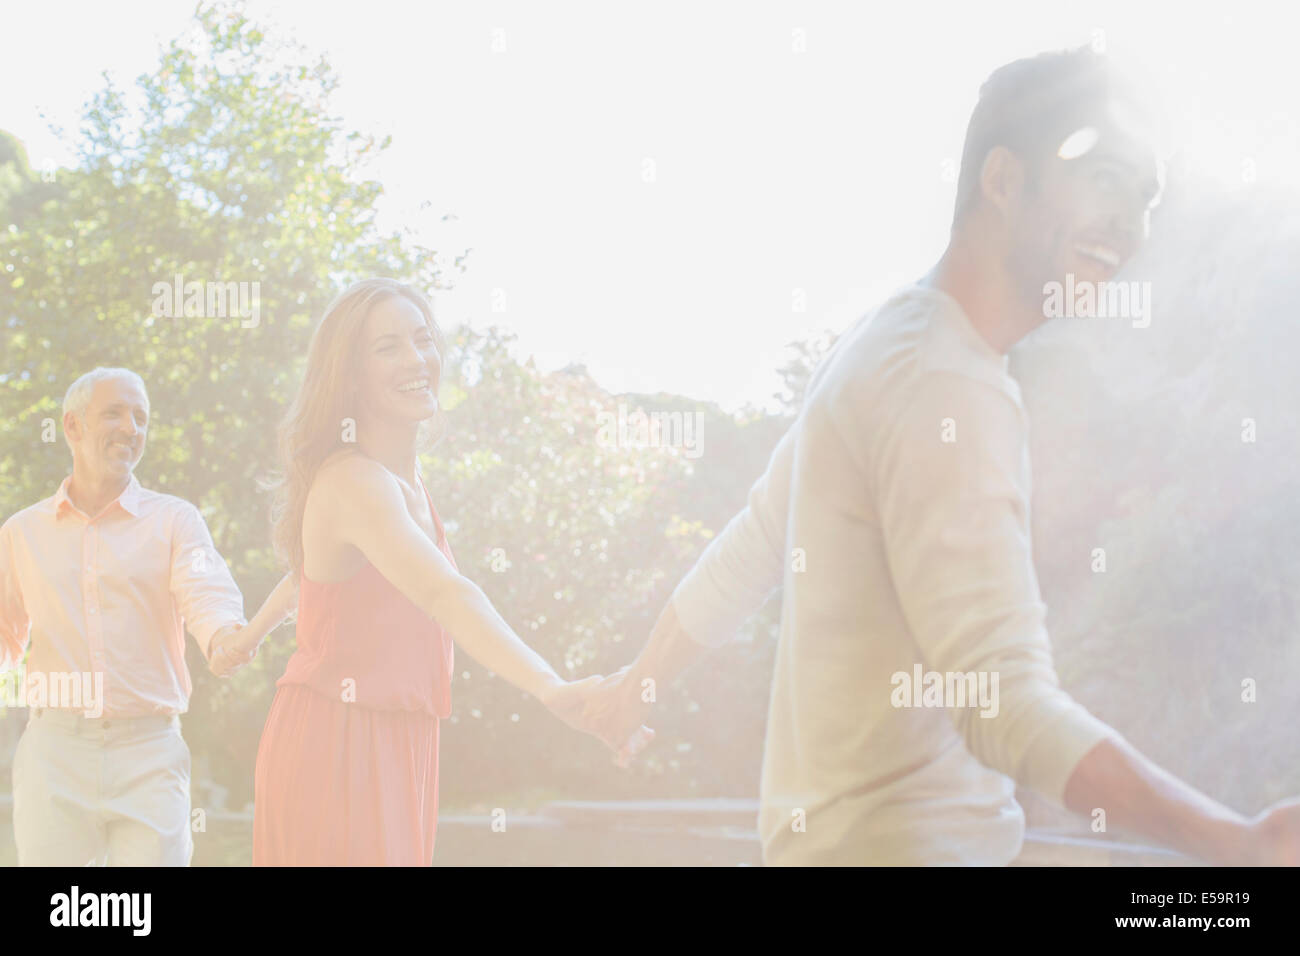 Sunbeam over friends holding hands outdoors - Stock Image